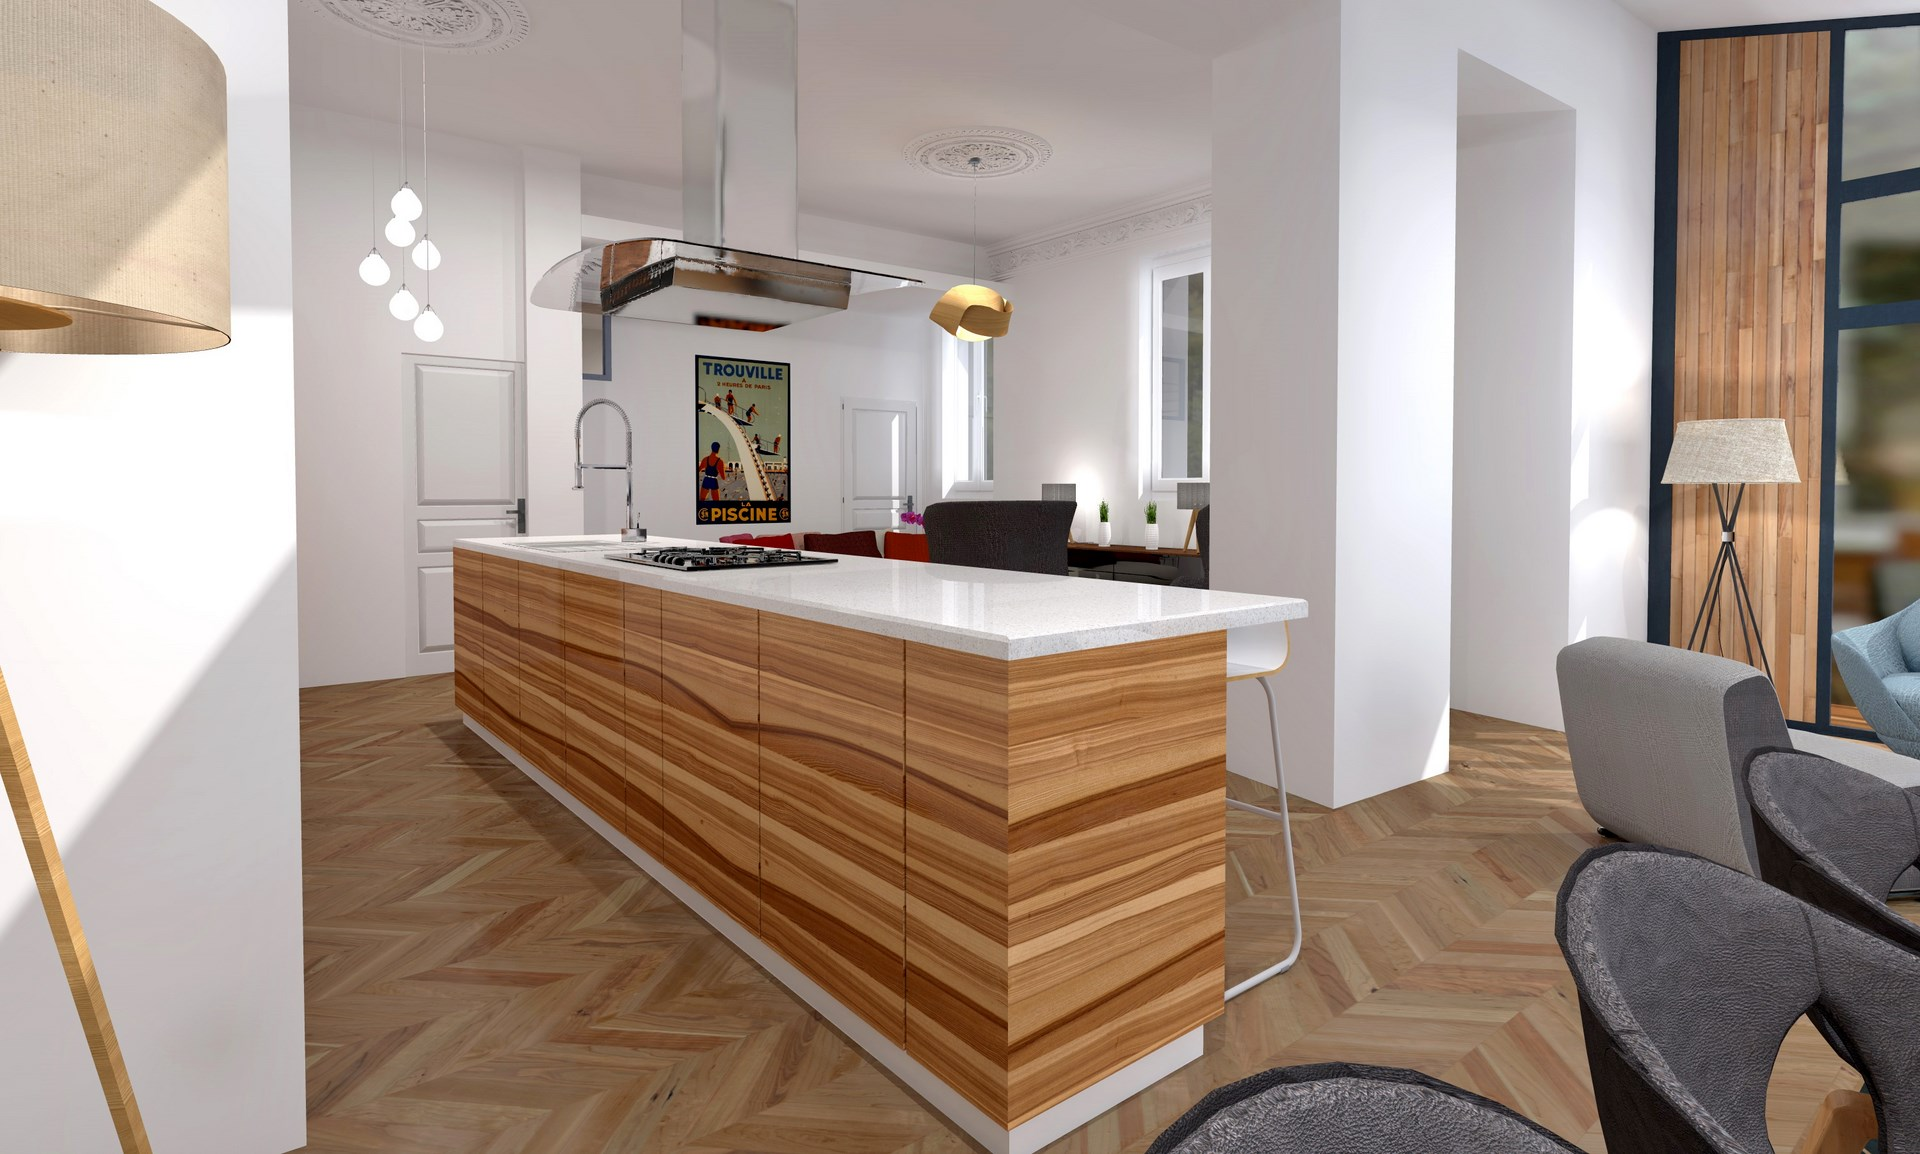 R organisation contemporaine maison tage parental et piscine for Cuisine ouverte ilot central